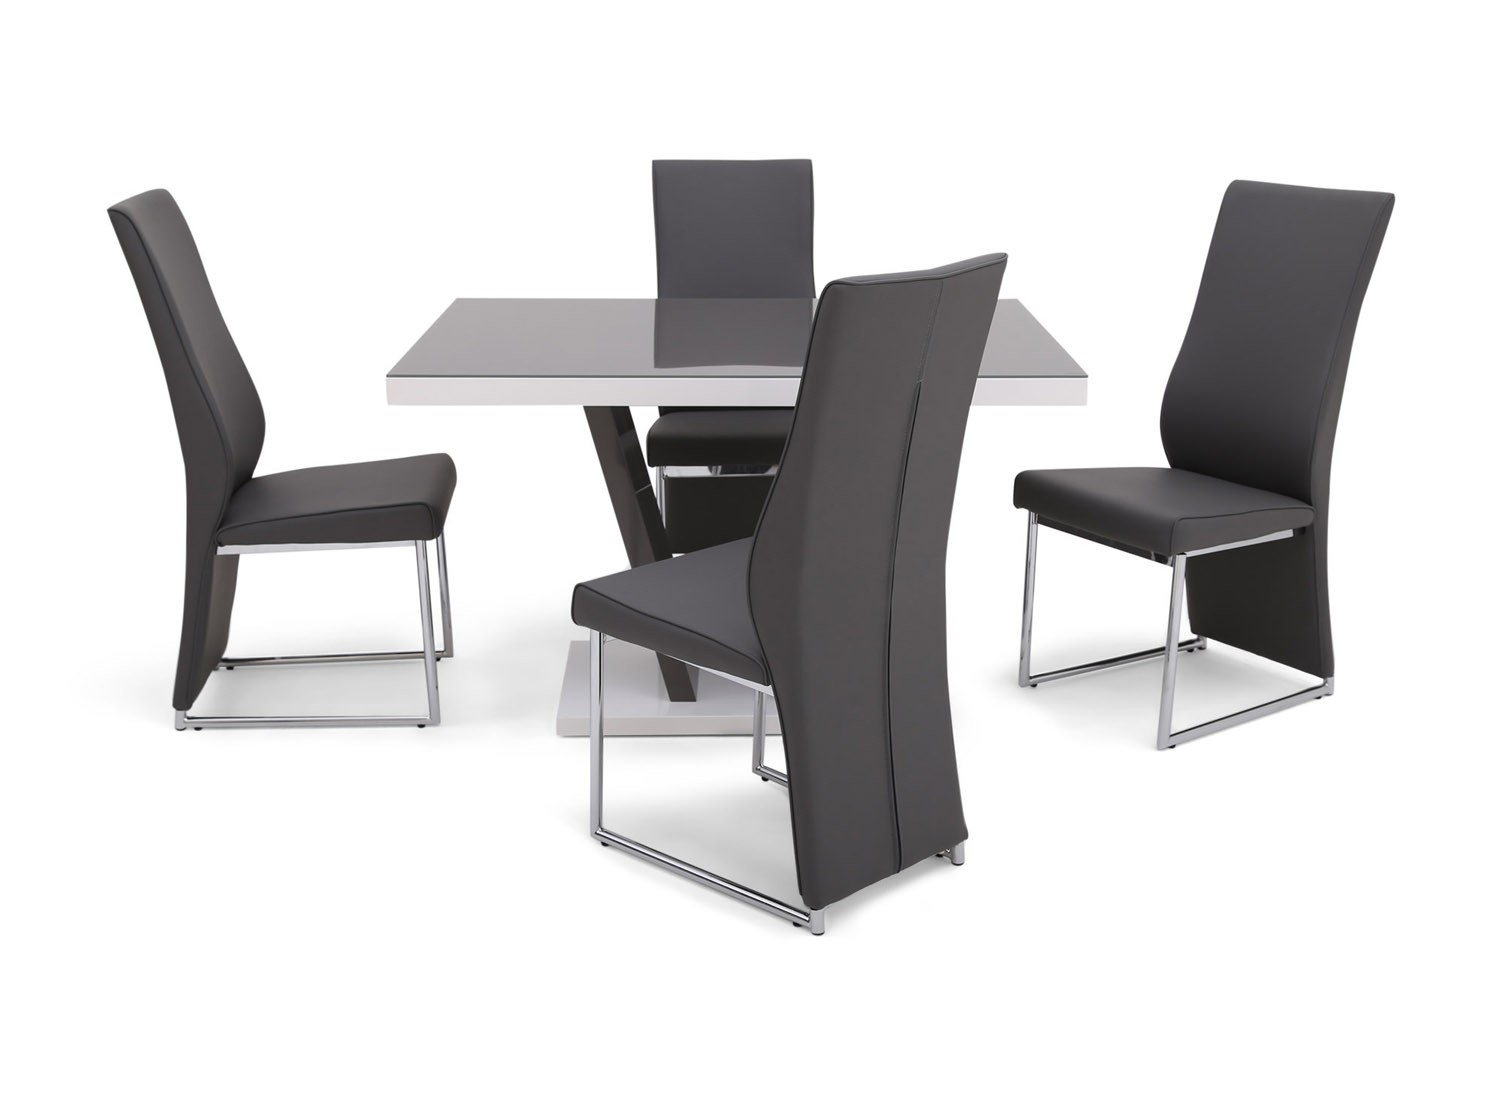 https://www.firstfurniture.co.uk/pub/media/catalog/product/f/a/fairmont_valentino_grey_high_gloss_dining_table_4_remo_black_chairs.jpg